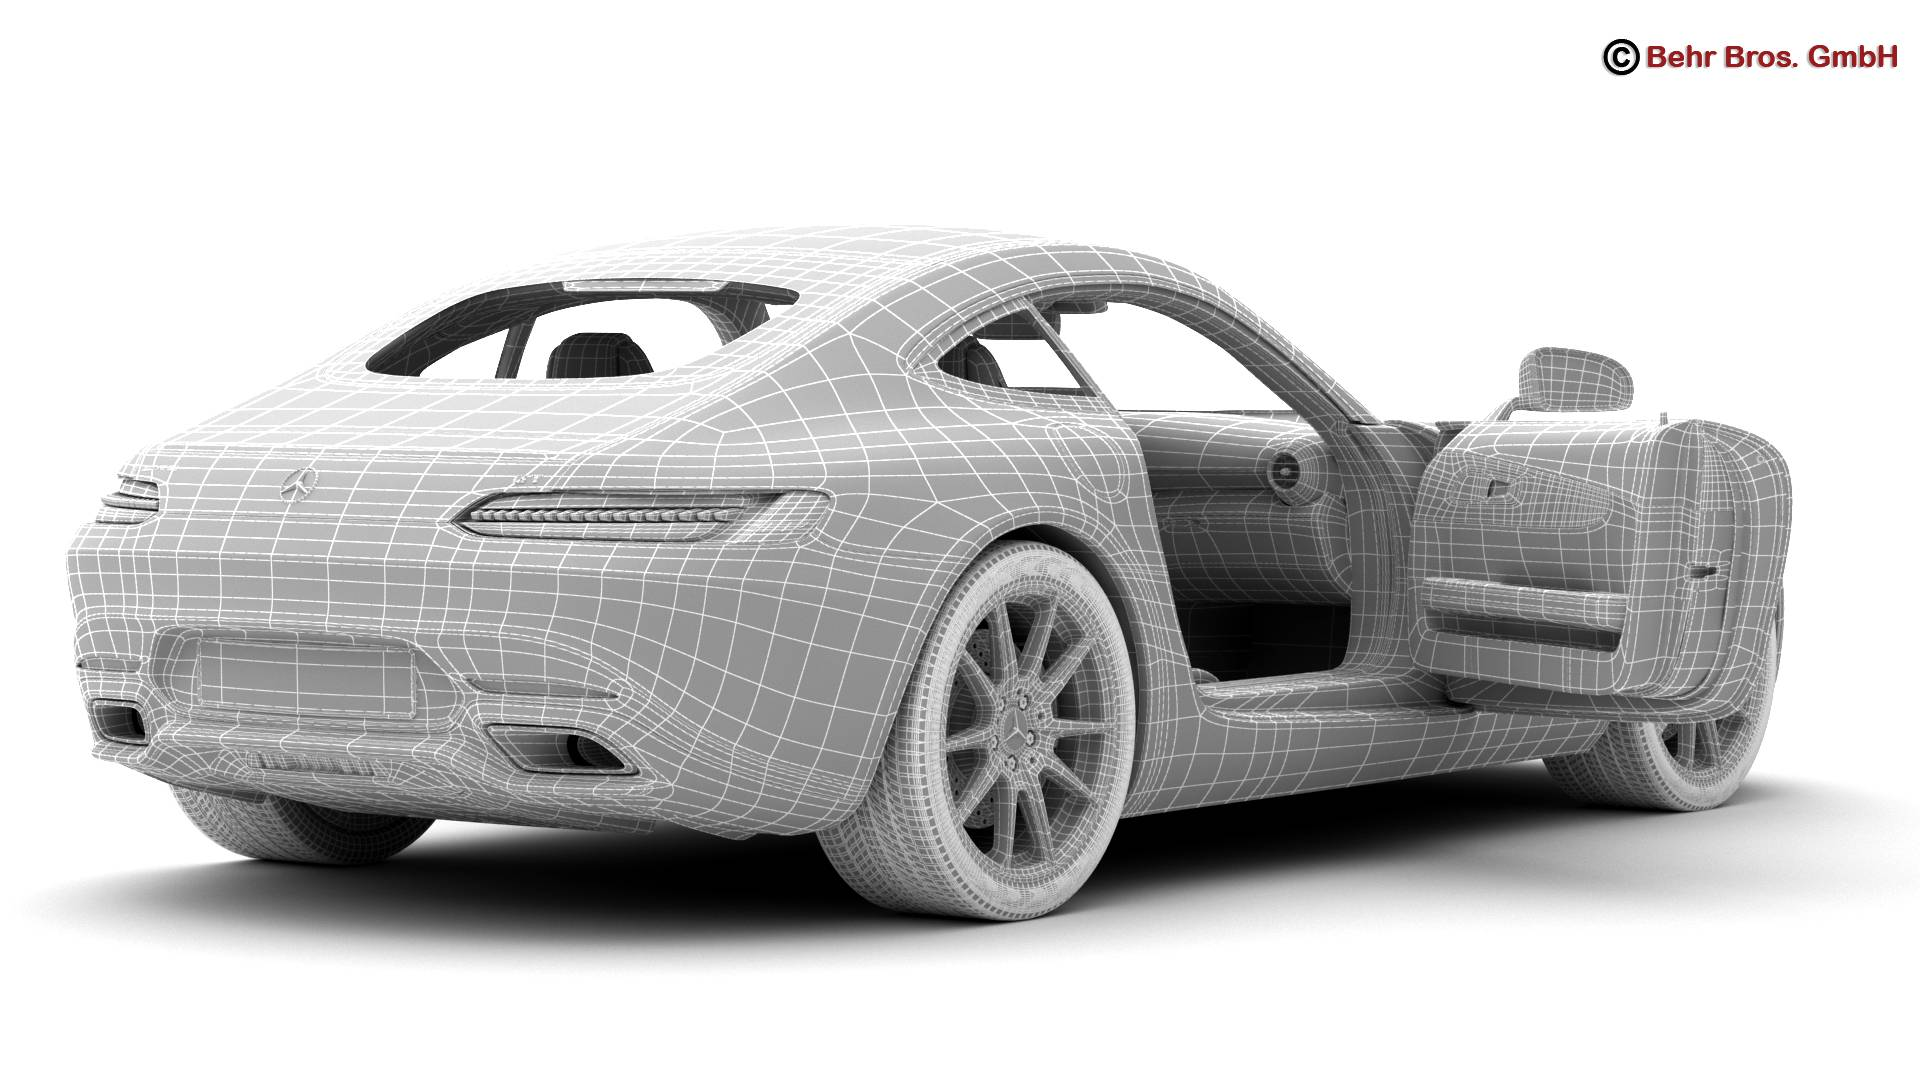 mercedes amg gt 2015 eu and us version 3d model 3ds max fbx c4d lwo ma mb obj 210131